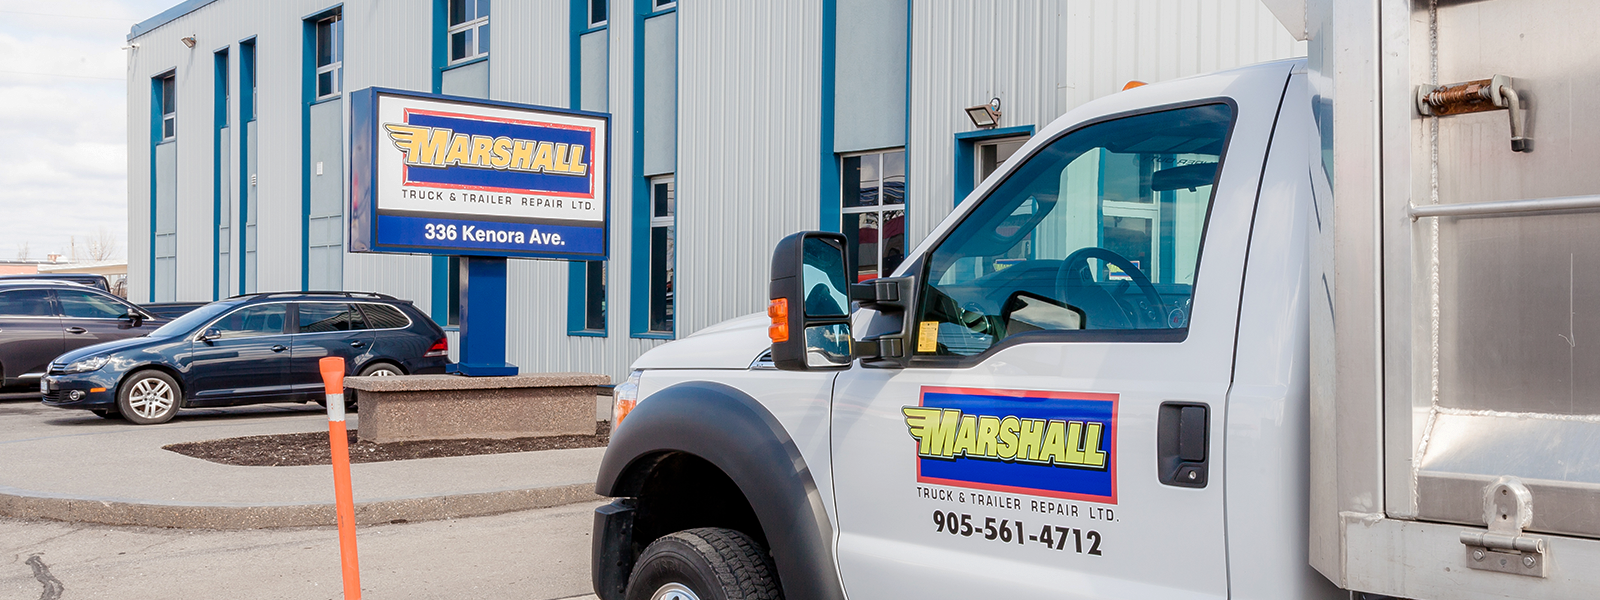 Marshall Truck & Trailer Repair Hamilton